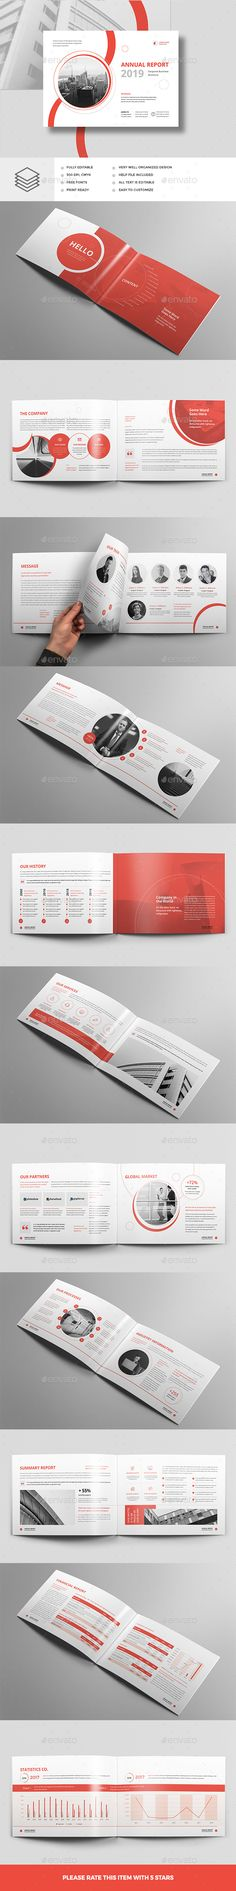 Annual Report Landscape A4 Brochure Template InDesign INDD - Download here: https://graphicriver.net/item/annual-report-landscape-a4/21841516?ref=ksioks